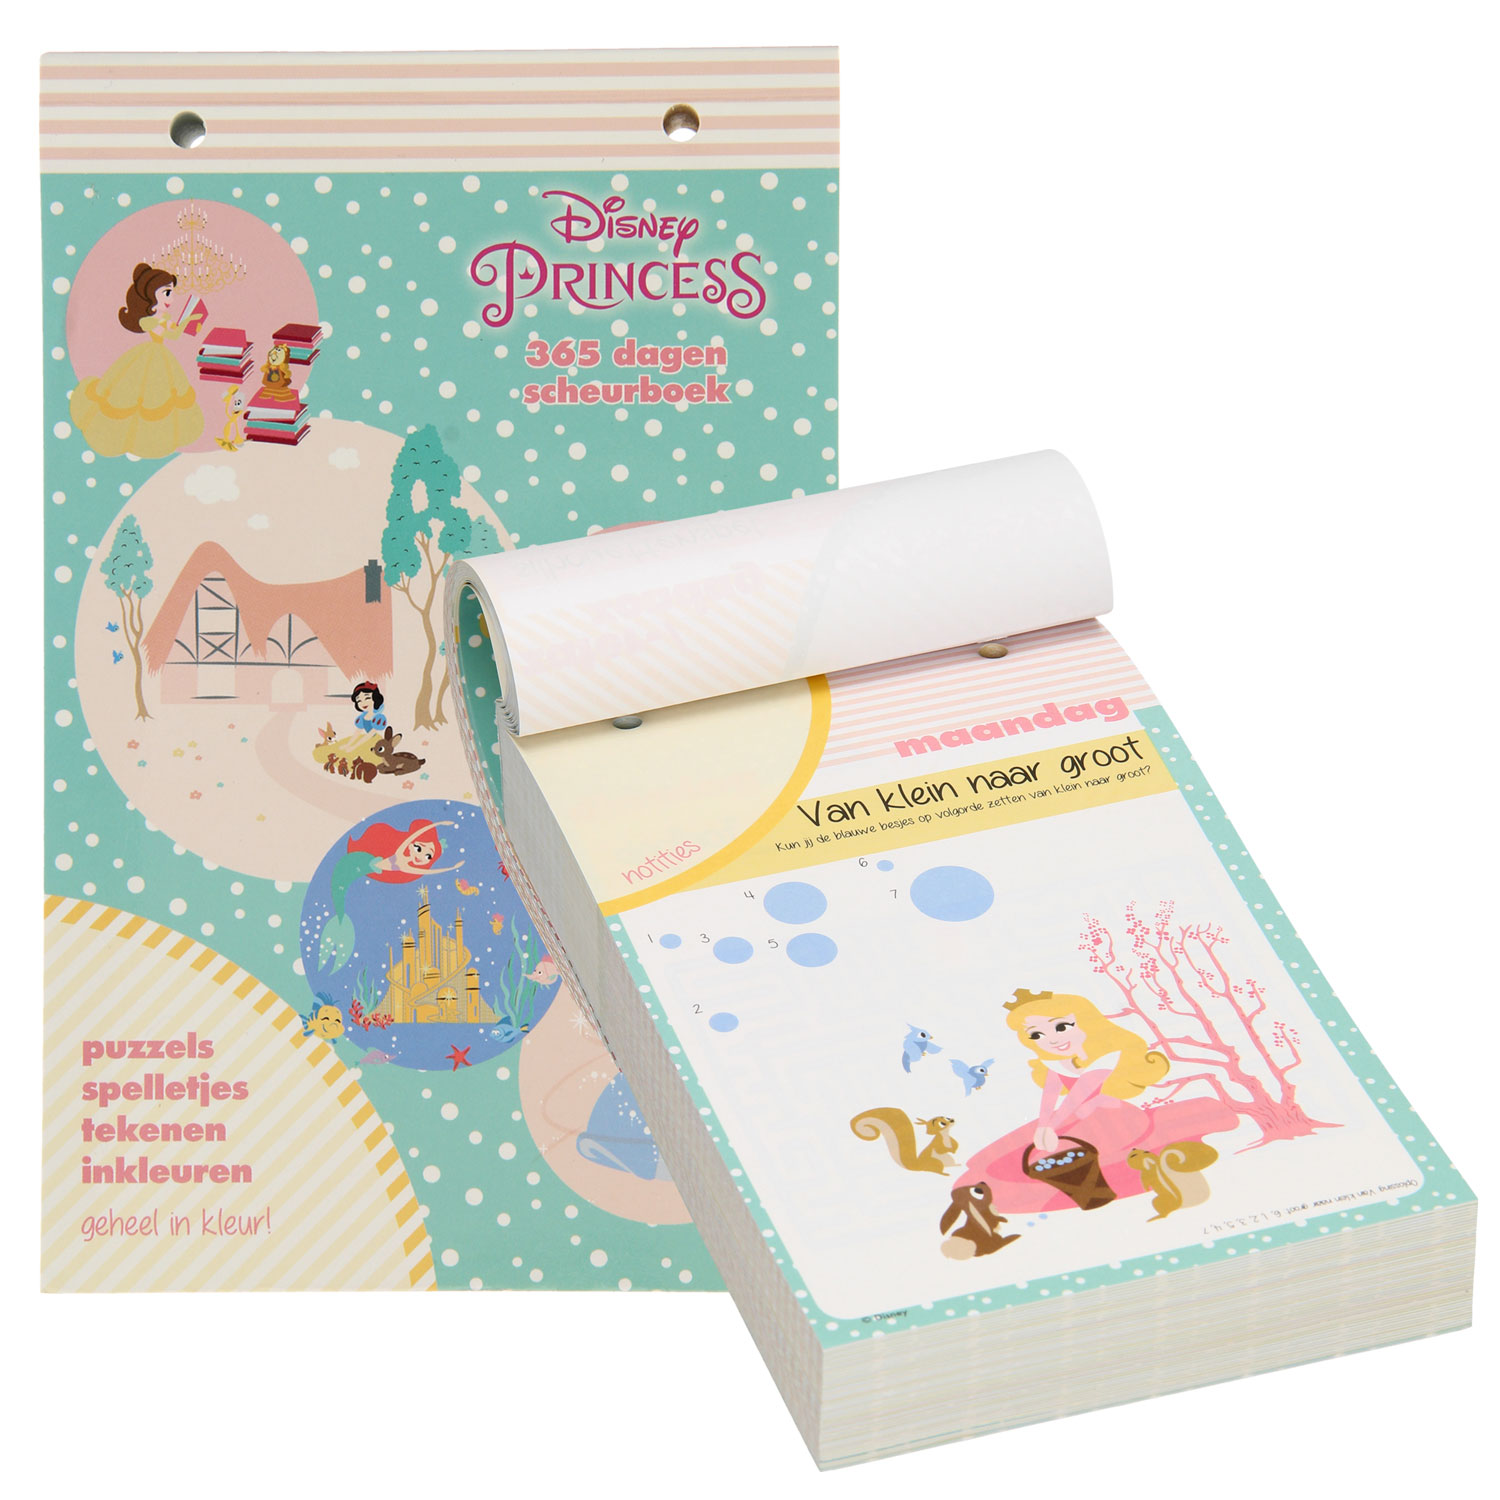 Scheurboek Disney Prinses